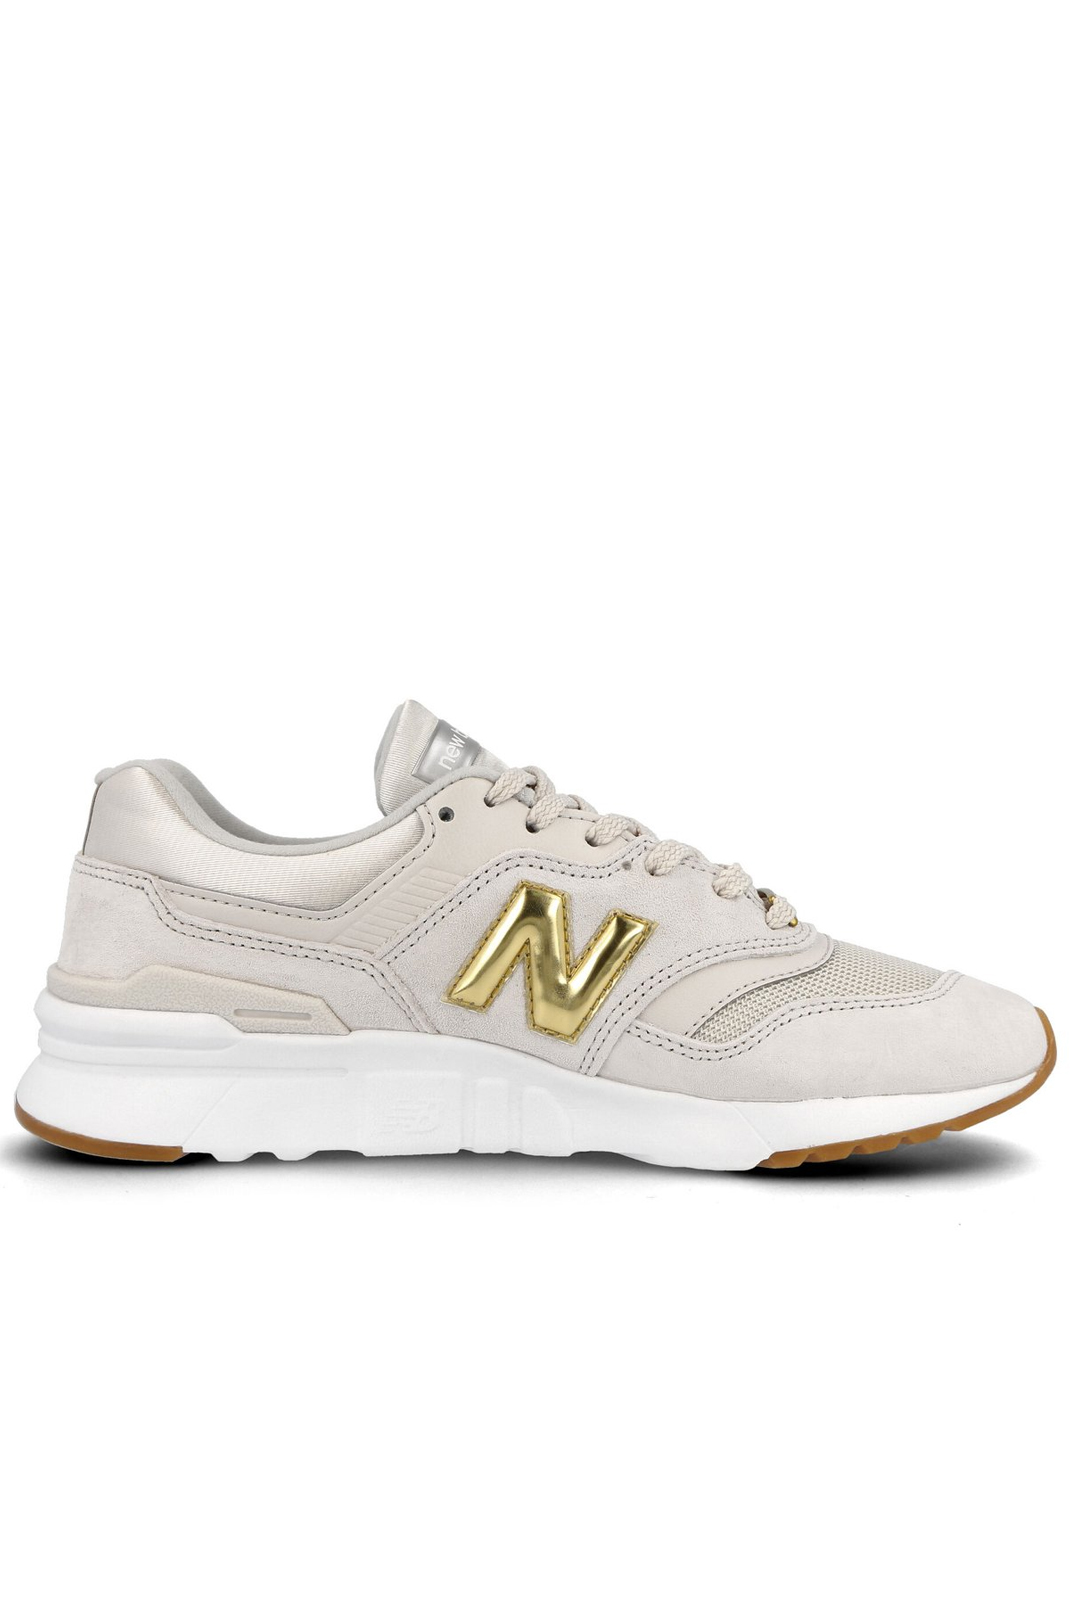 Baskets / Sneakers  New balance CW997HAG ag